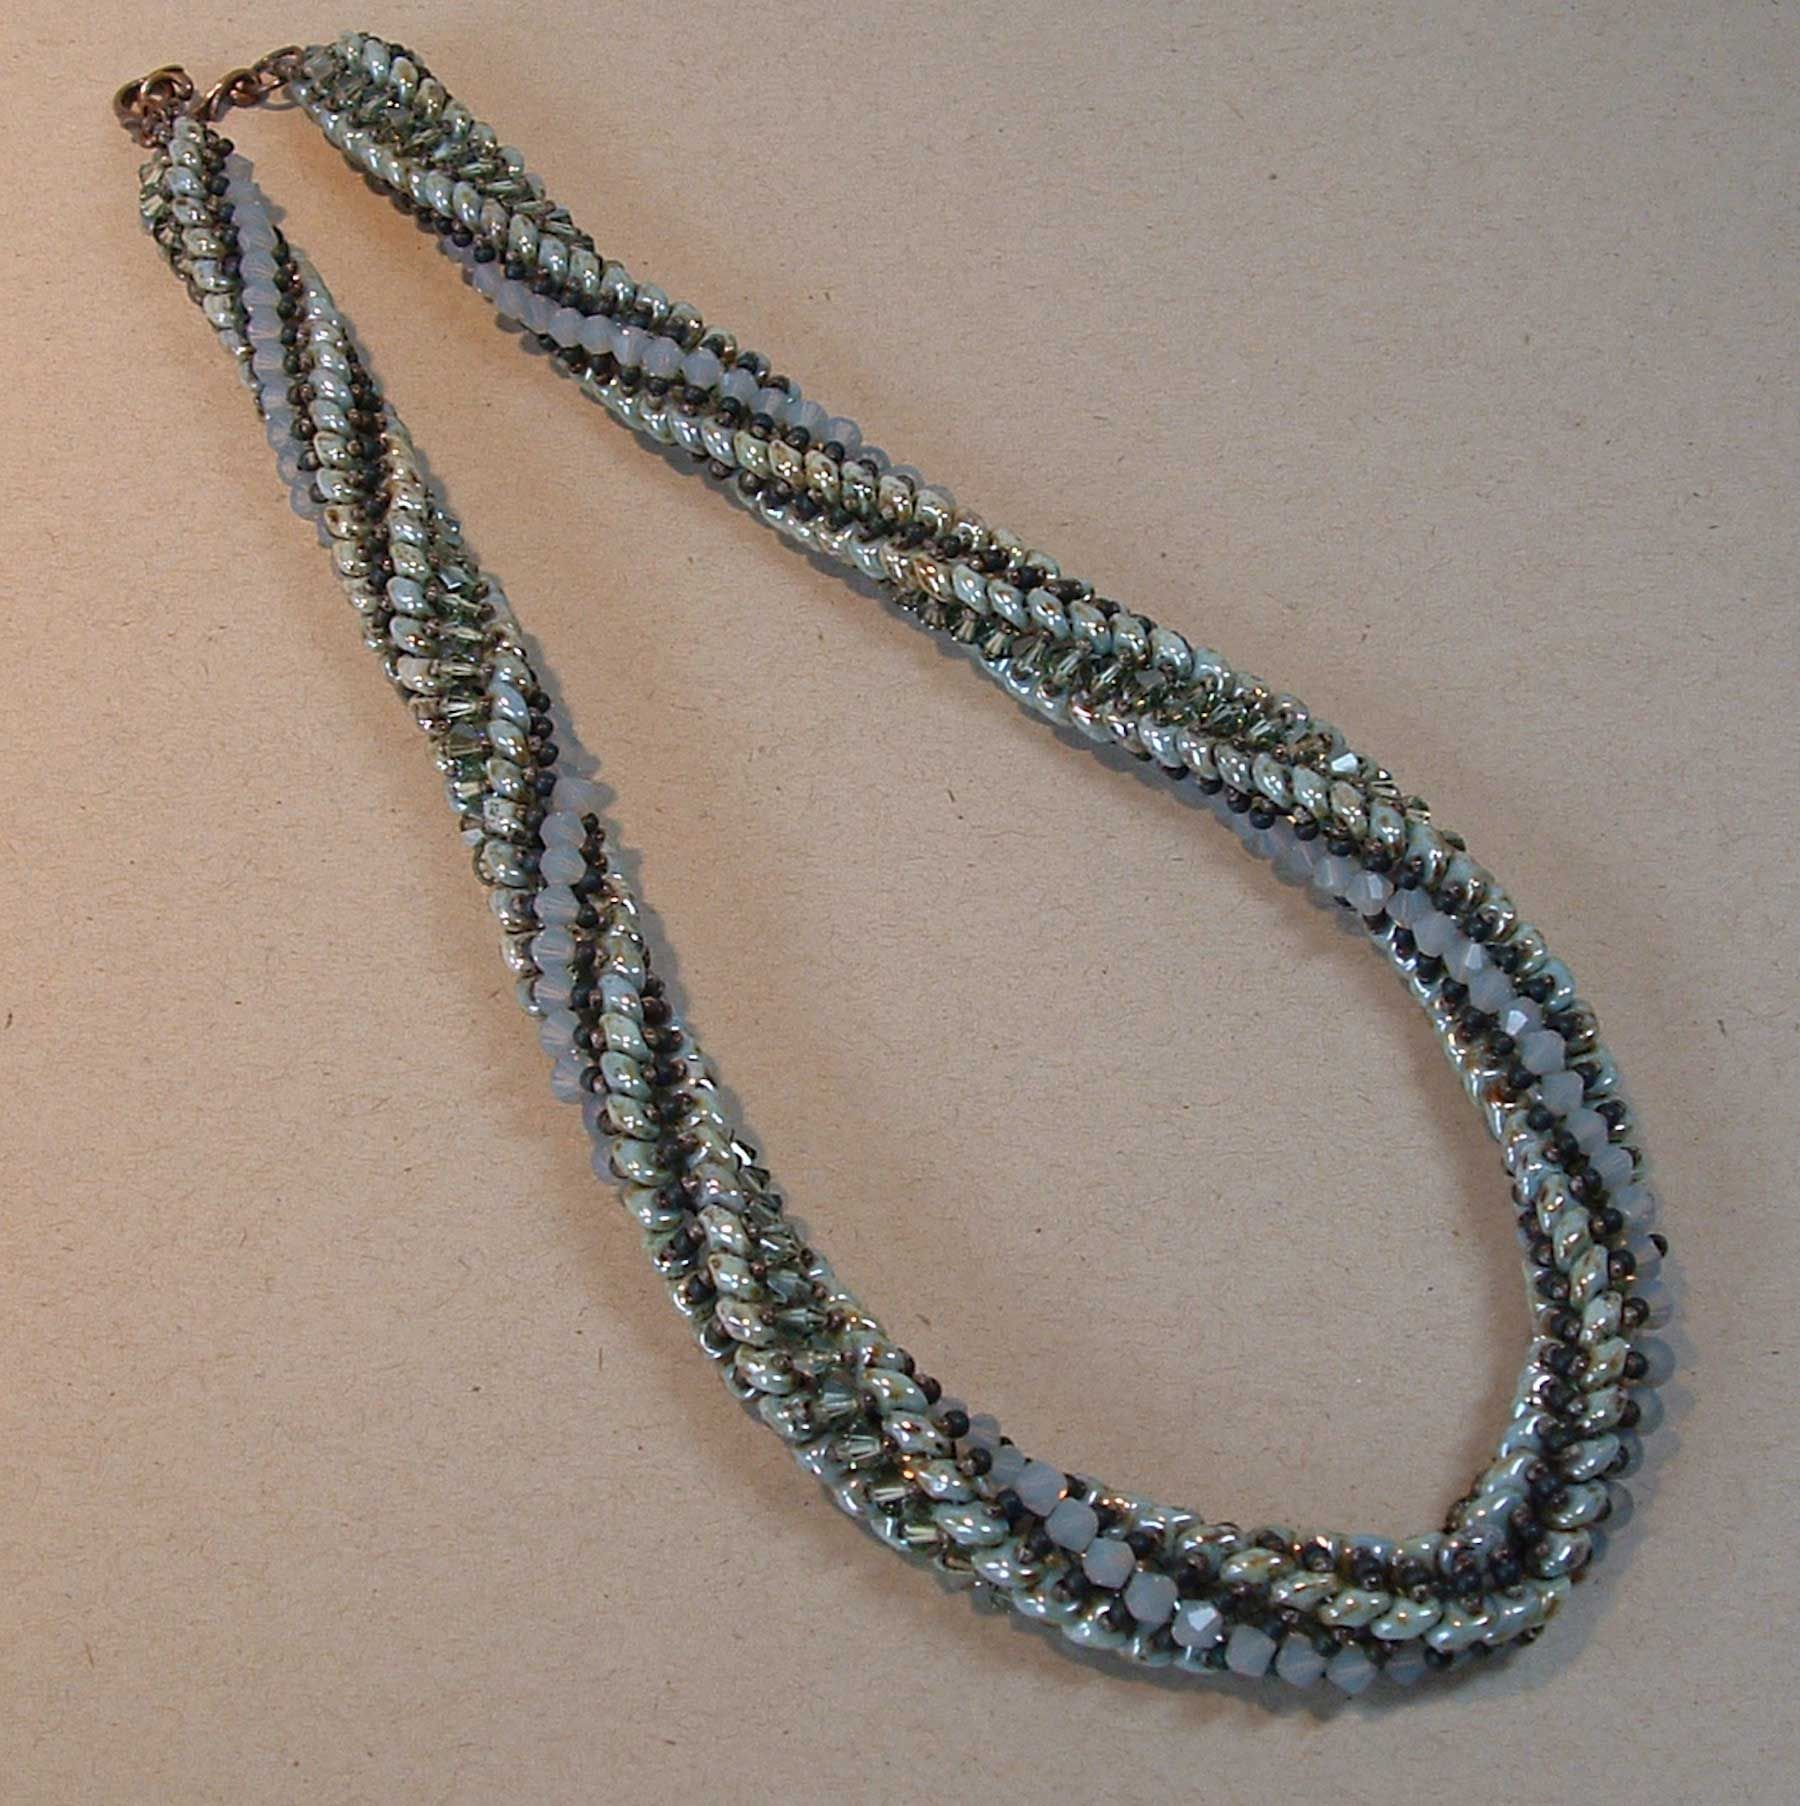 Crystals, seed beads, & duos create this gorgeous necklace – an original creation taught by author & designer Anna Elizabeth Draeger